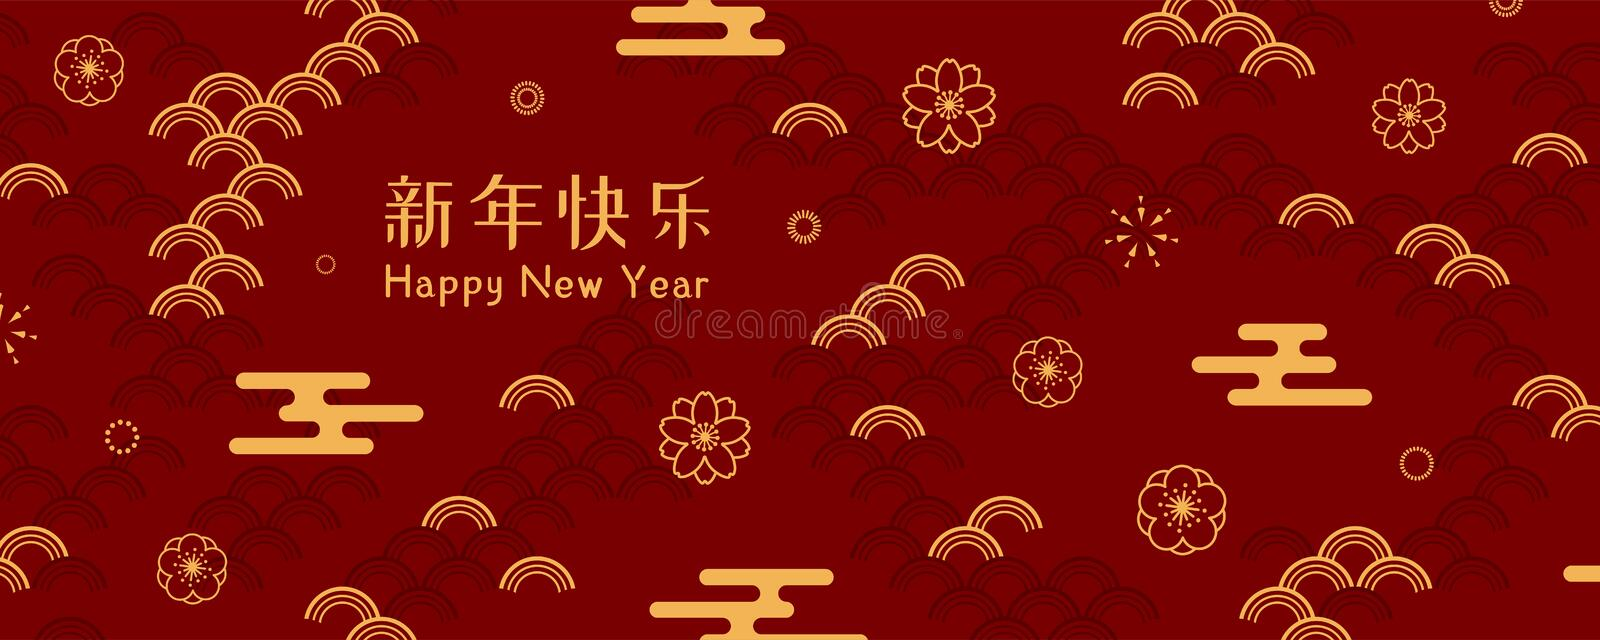 Chinese New Year banner design royalty free illustration